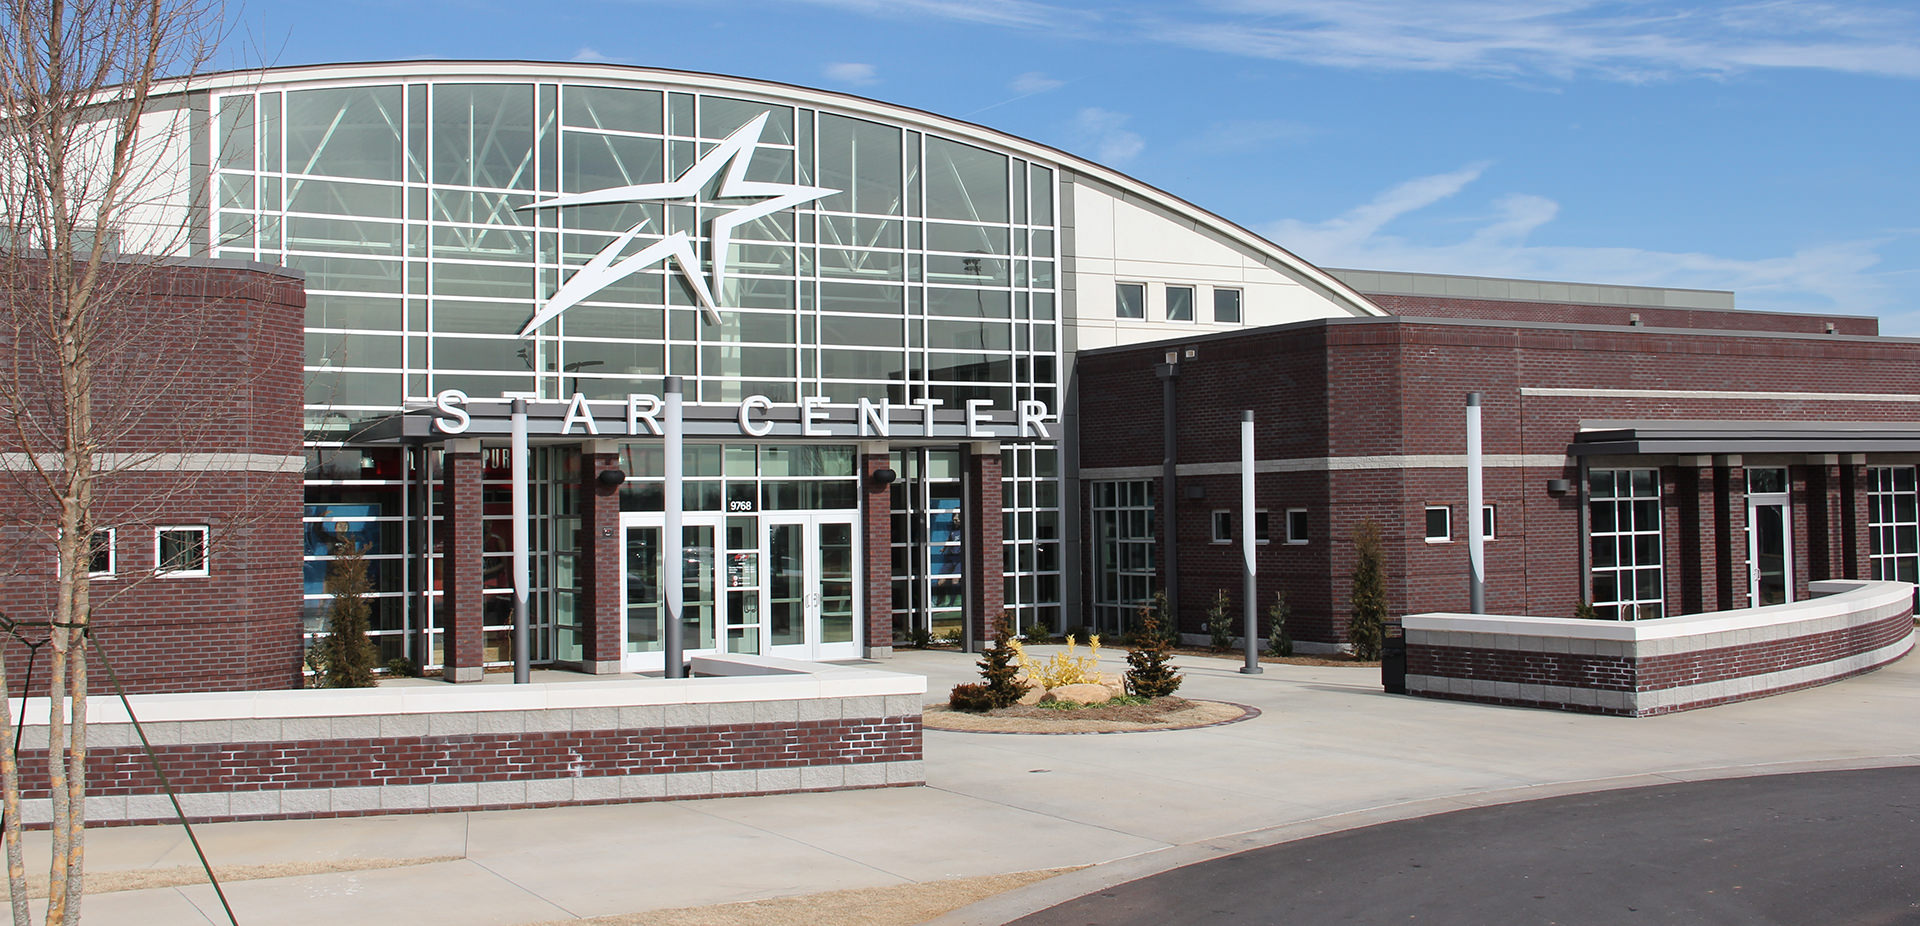 Upward Star Center Gymnasium